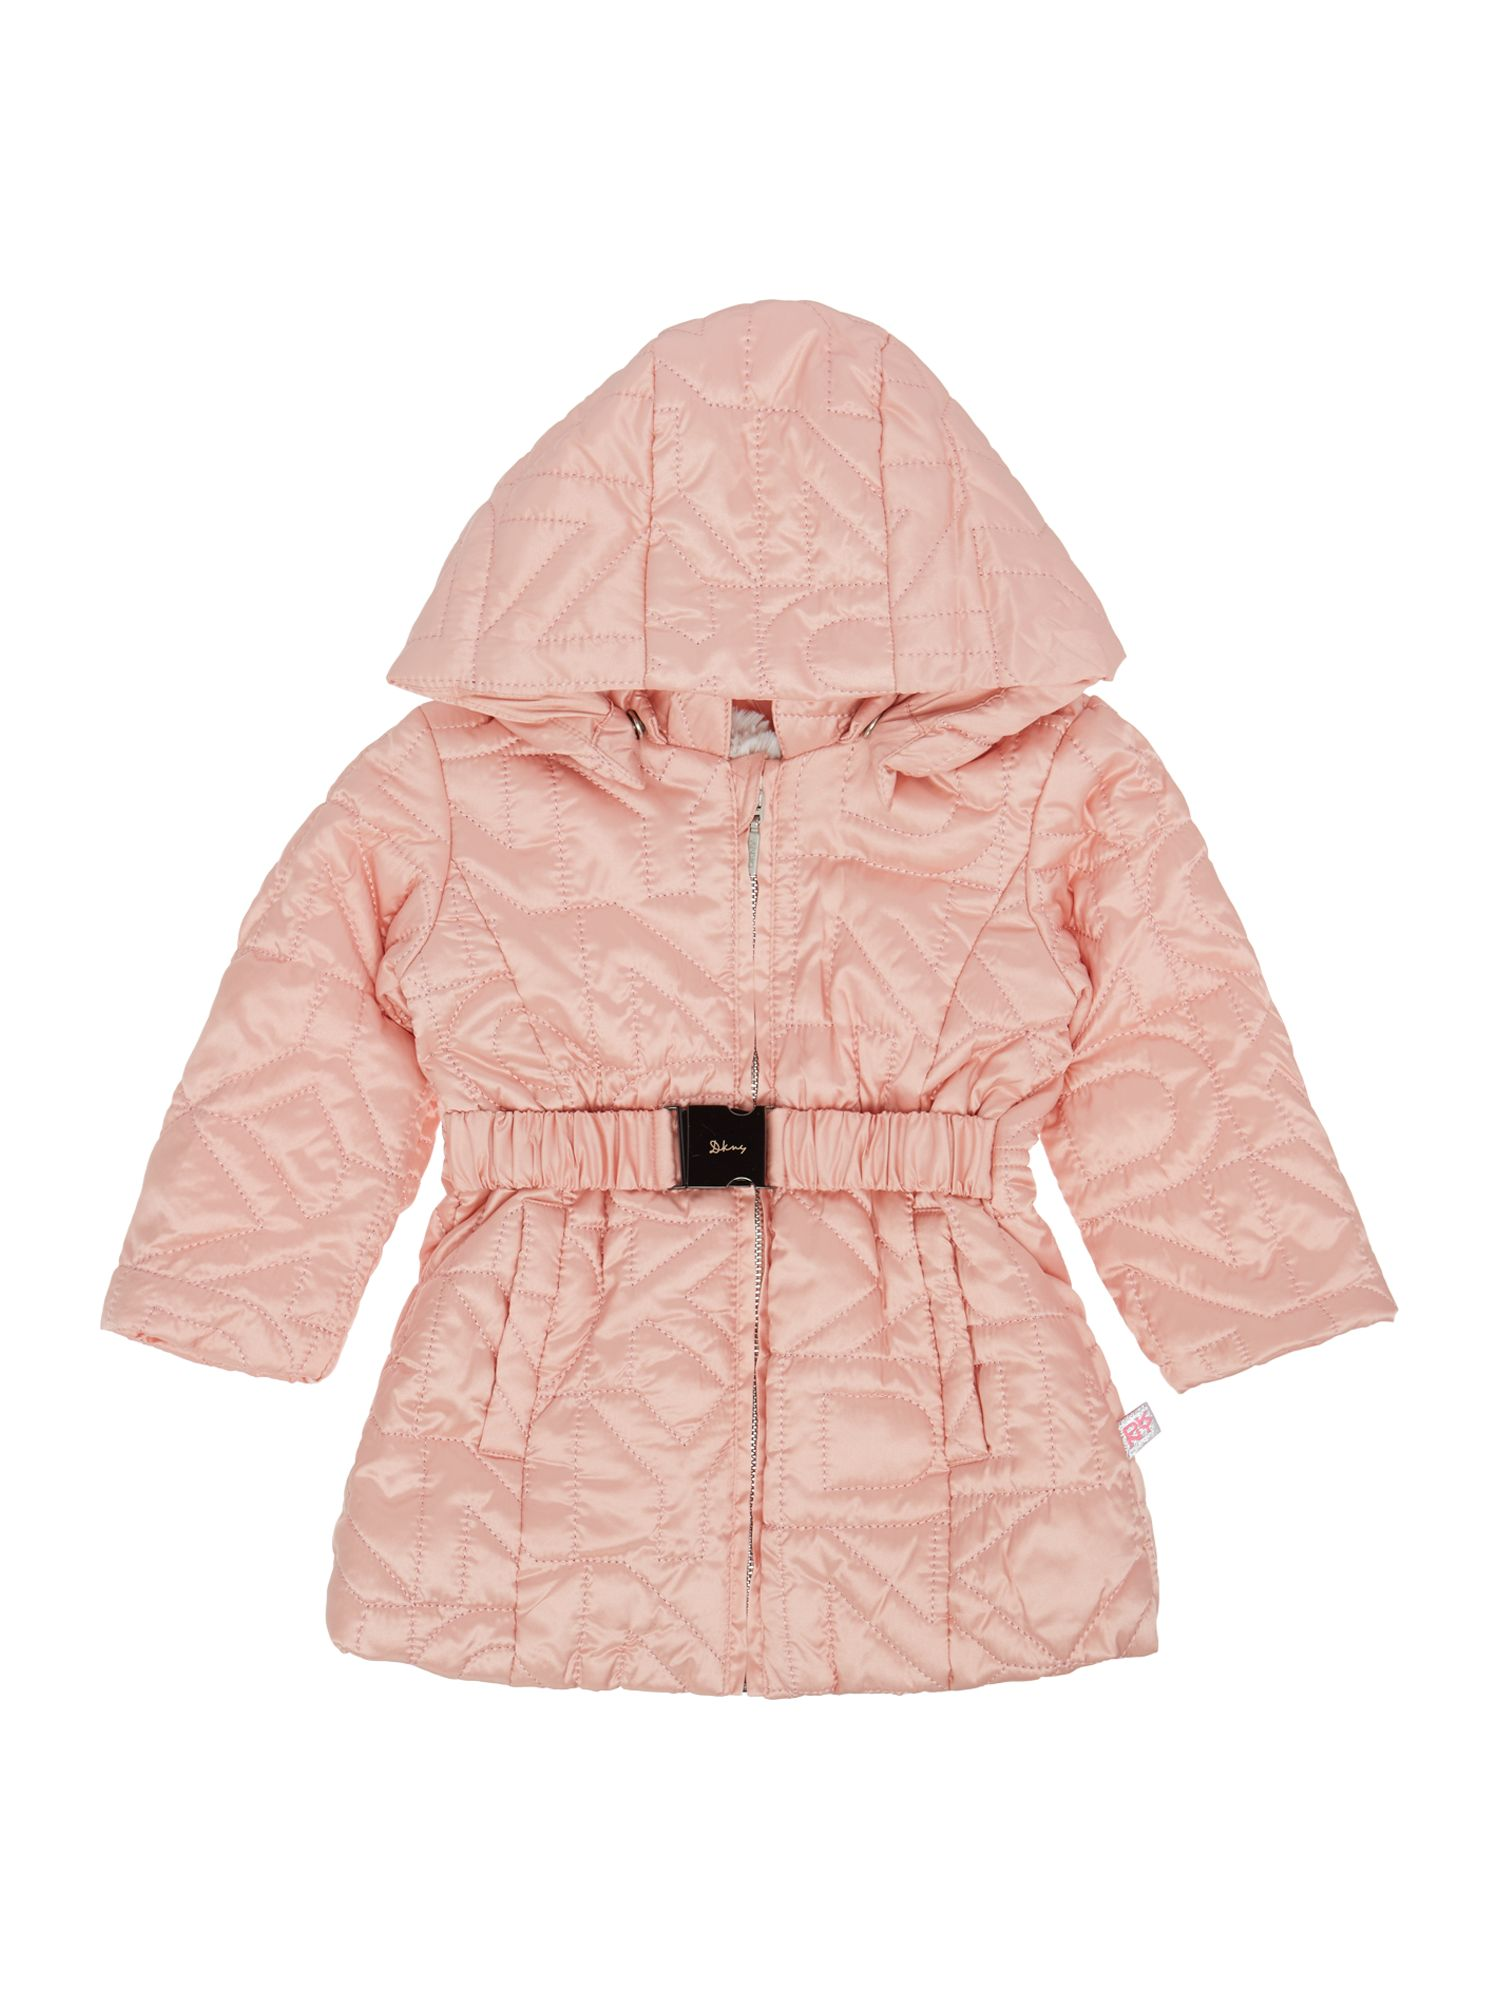 Dkny Baby Girl Clothes